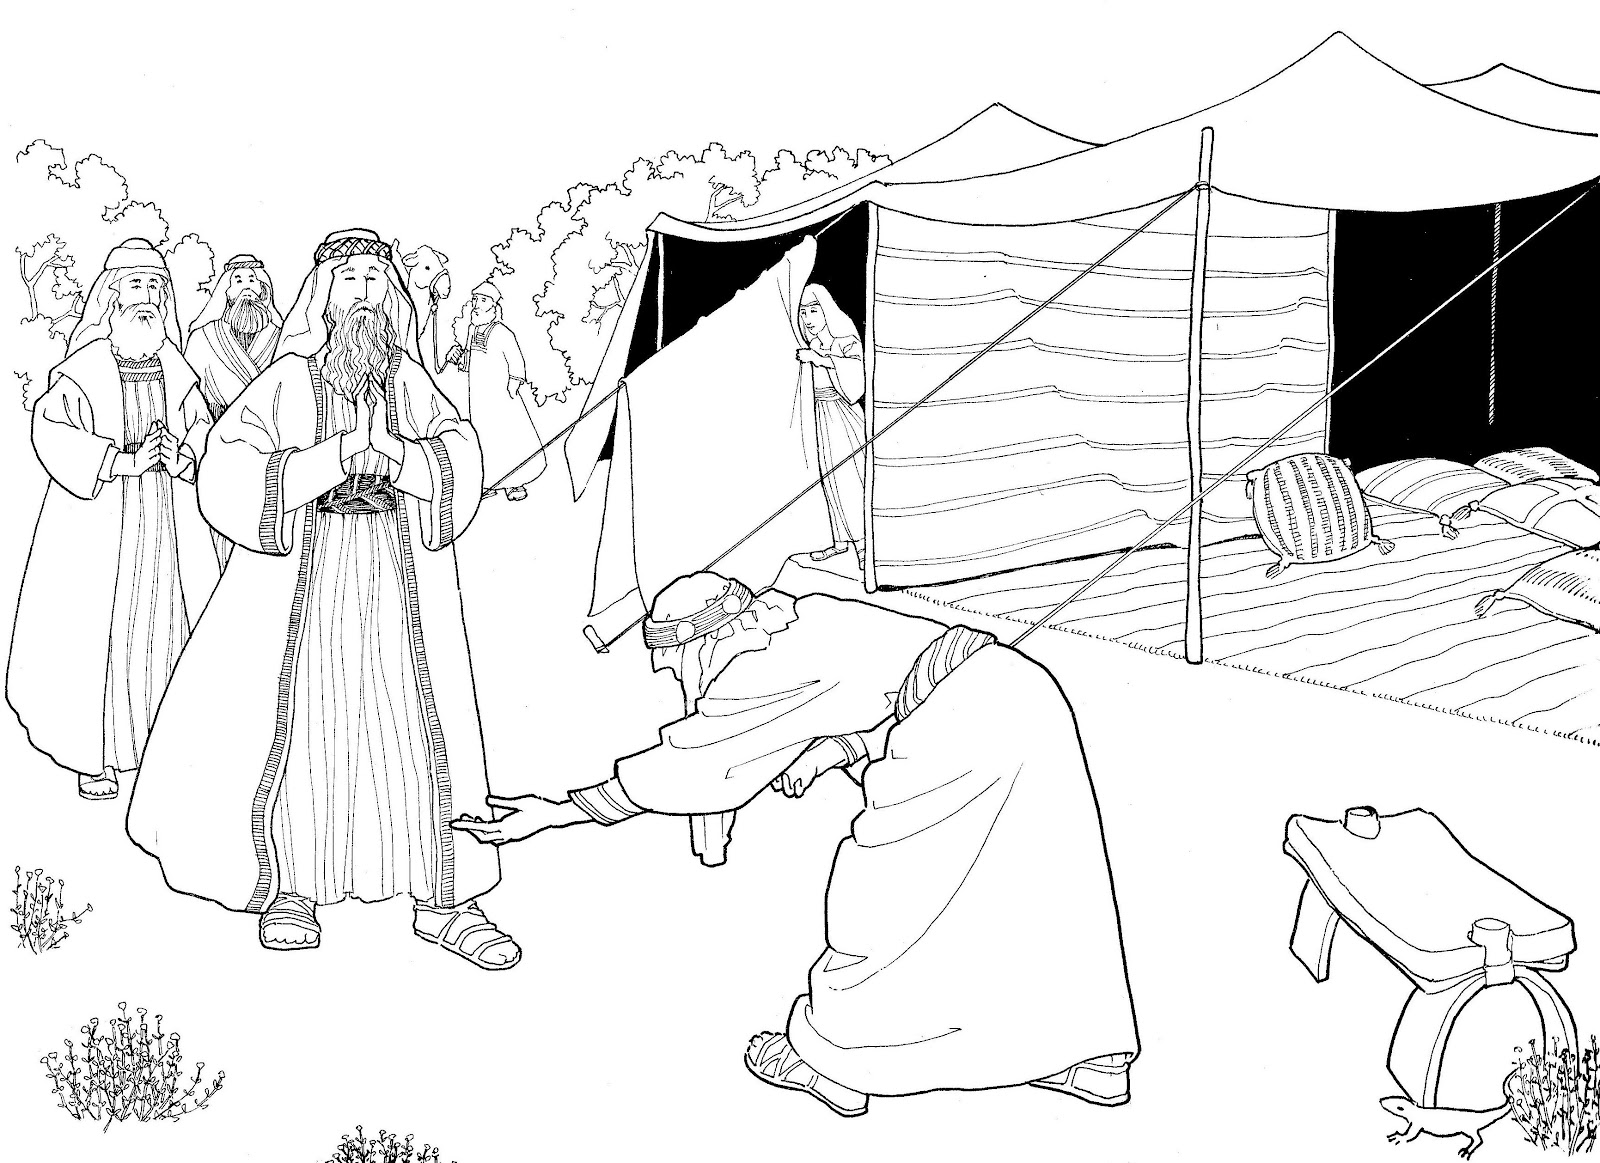 Adult Beauty Old Testament Coloring Pages Gallery Images top 1000 images about coloring pages on pinterest learn more at 1 bp blogspot com gallery images